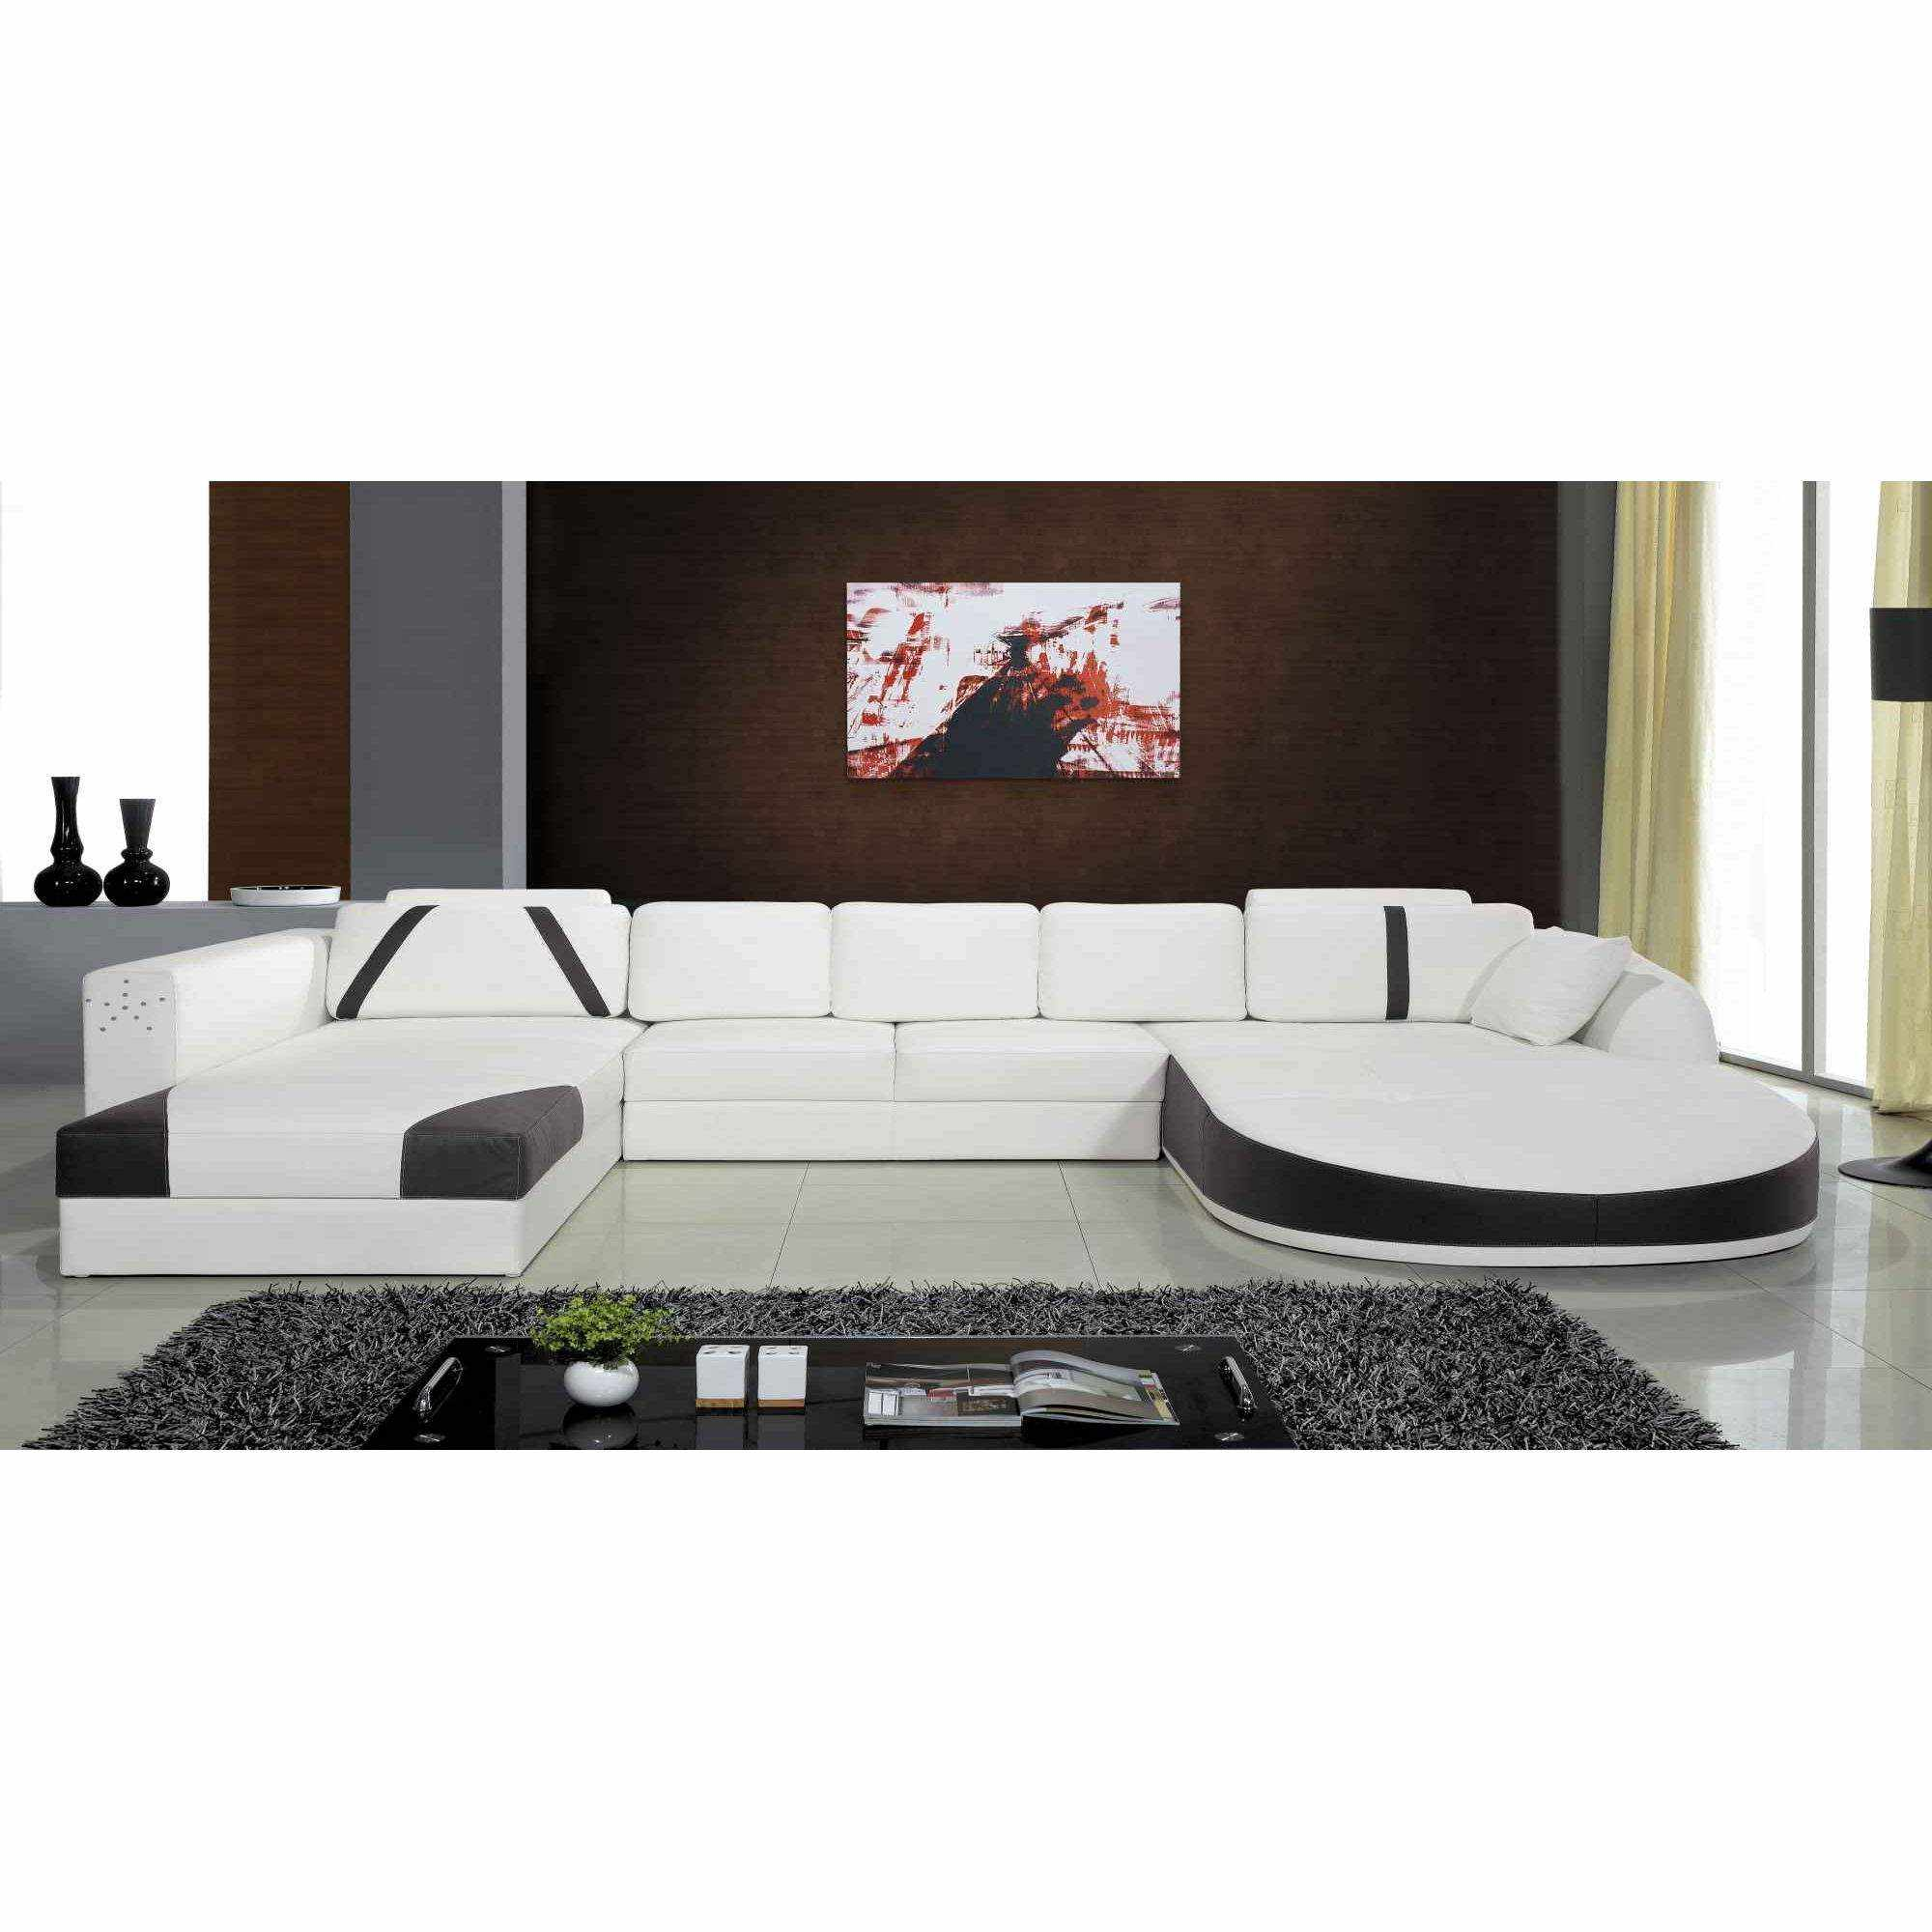 deco in paris canape 2 angles en cuir blanc et noir sonia can 2xangle pu sonia blanc. Black Bedroom Furniture Sets. Home Design Ideas